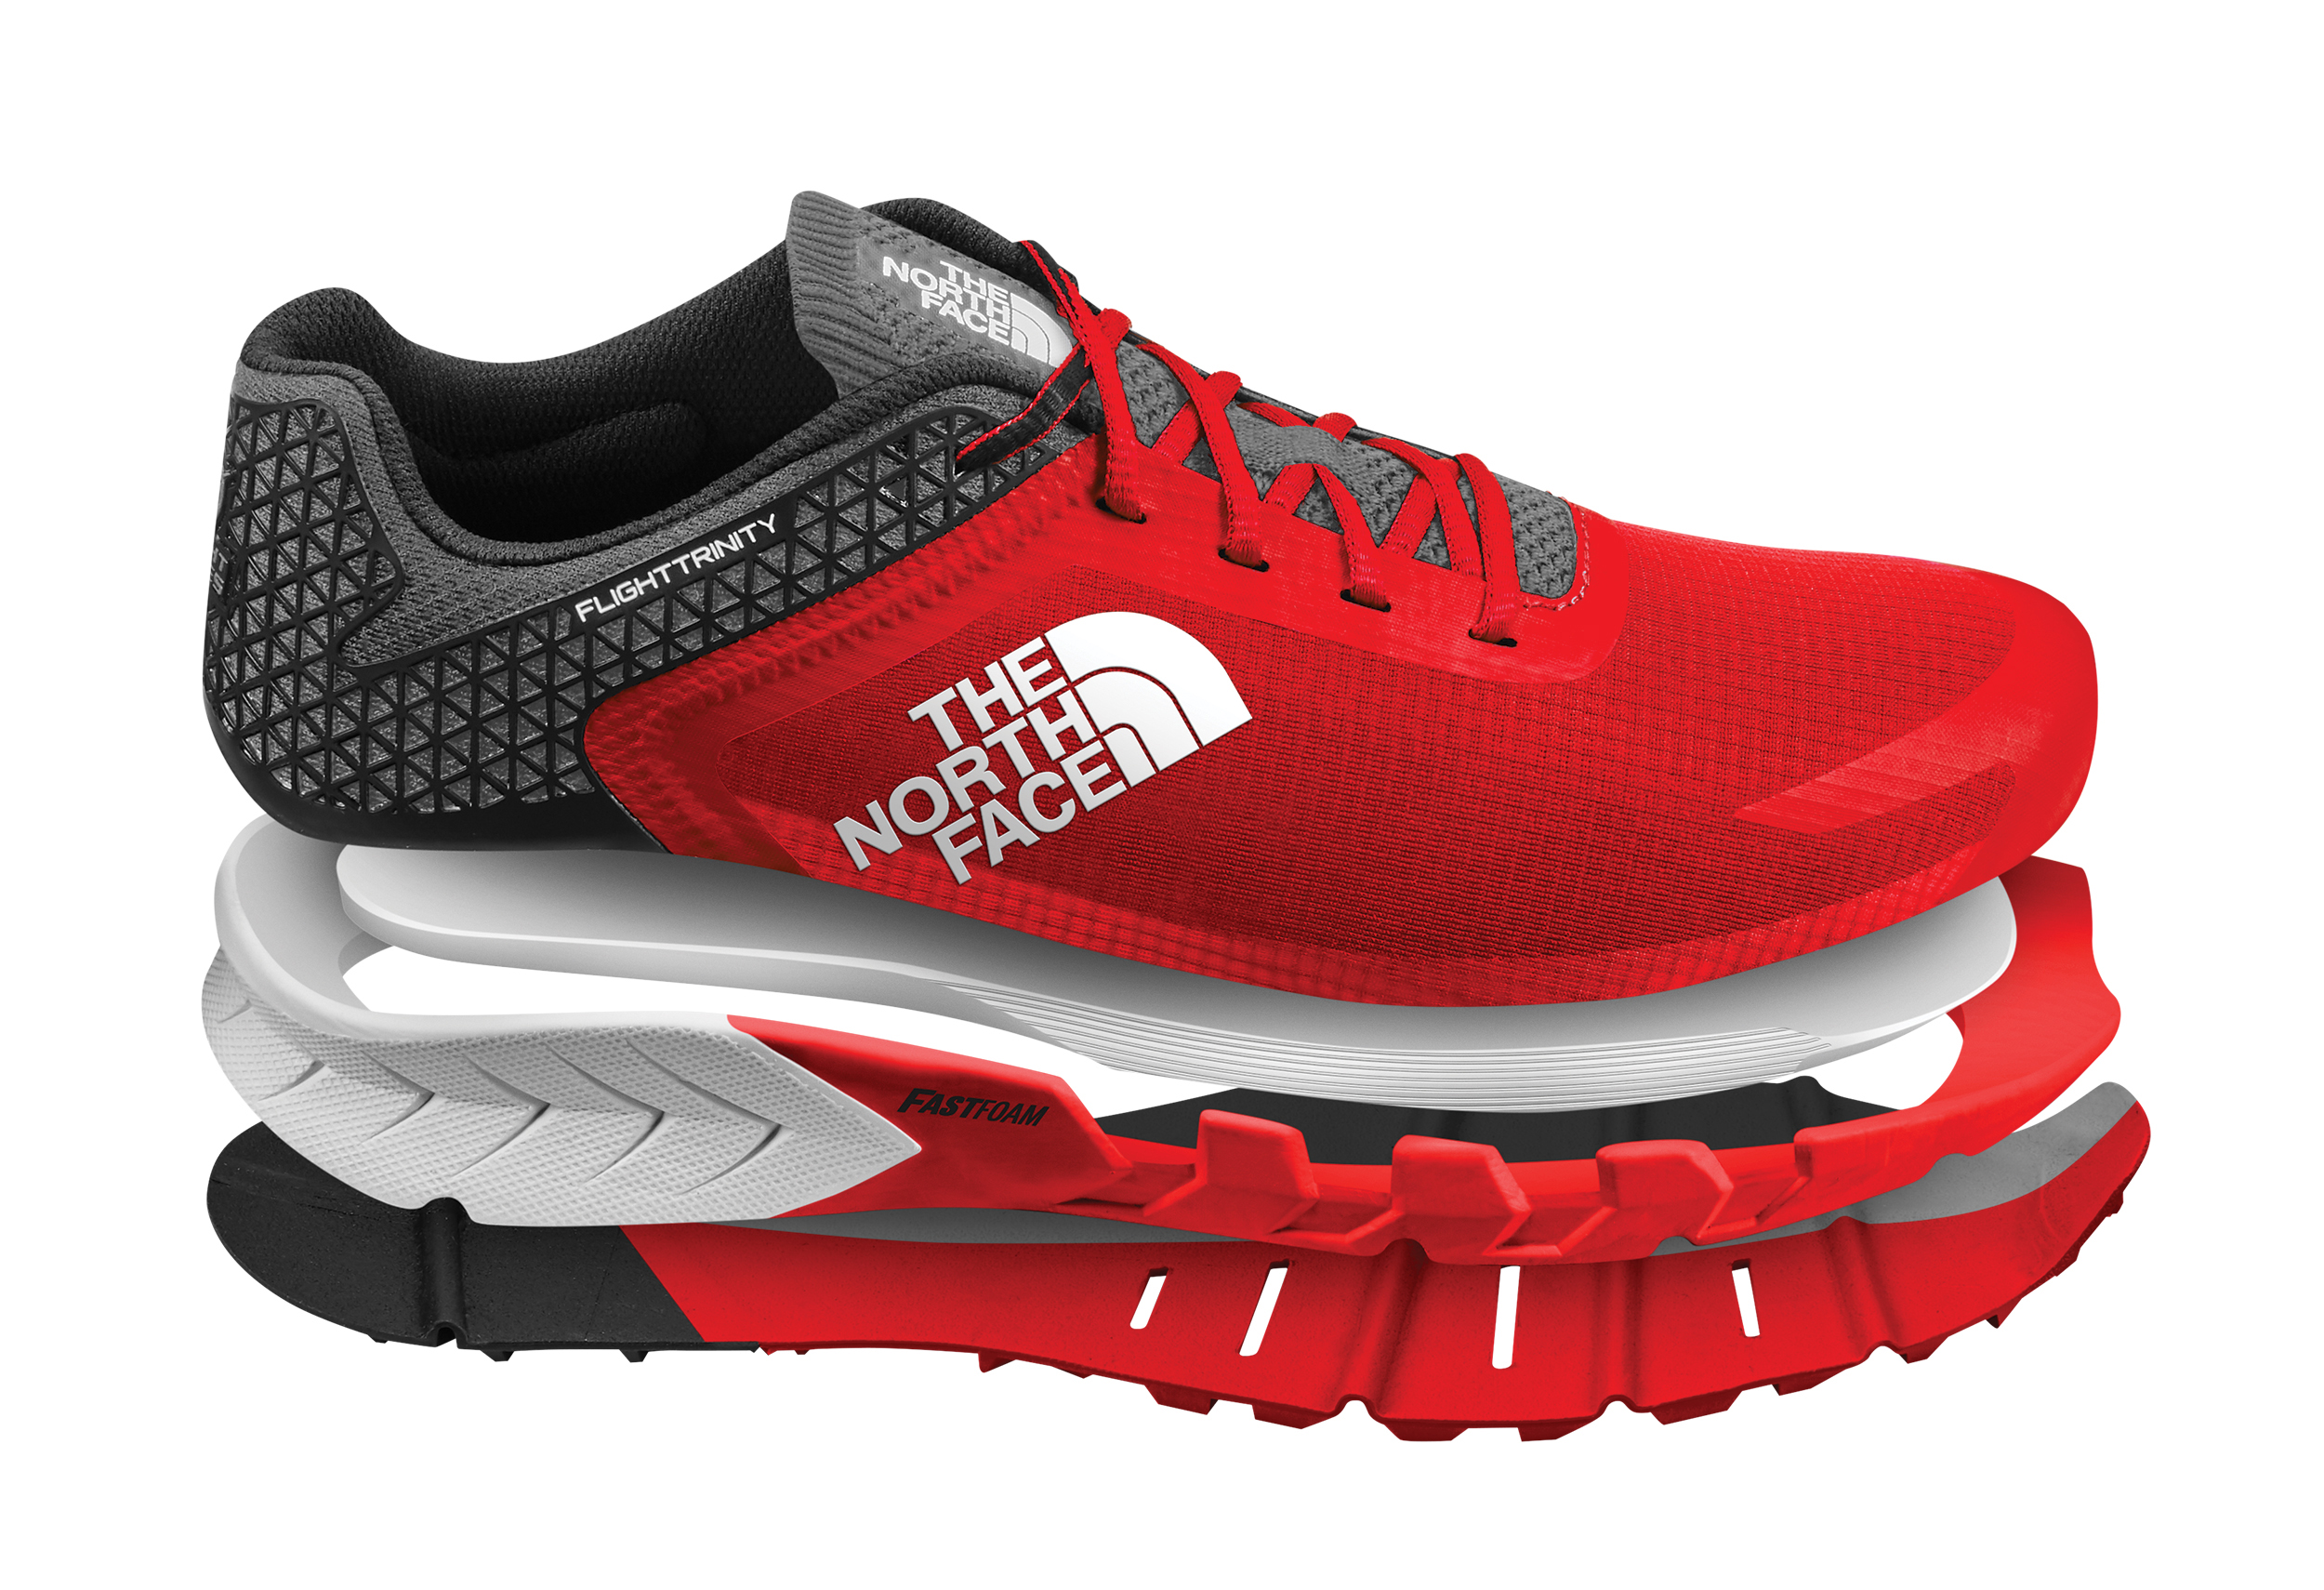 buy online 65d99 1a039 The North Face Flight Trinity Trail Running Shoes - Men's